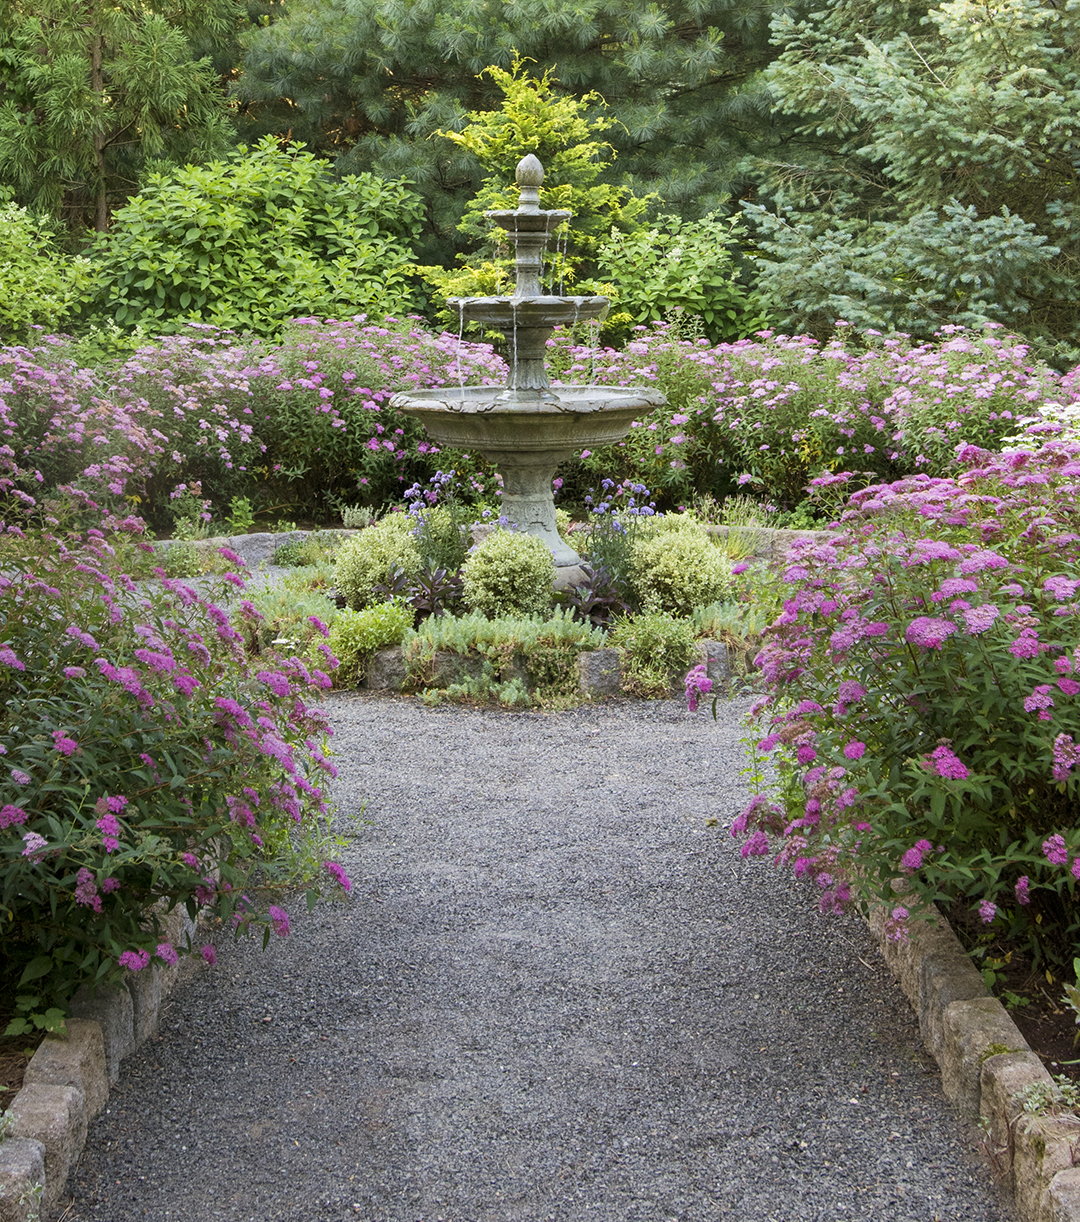 stone path and tiered fountain in formal garden